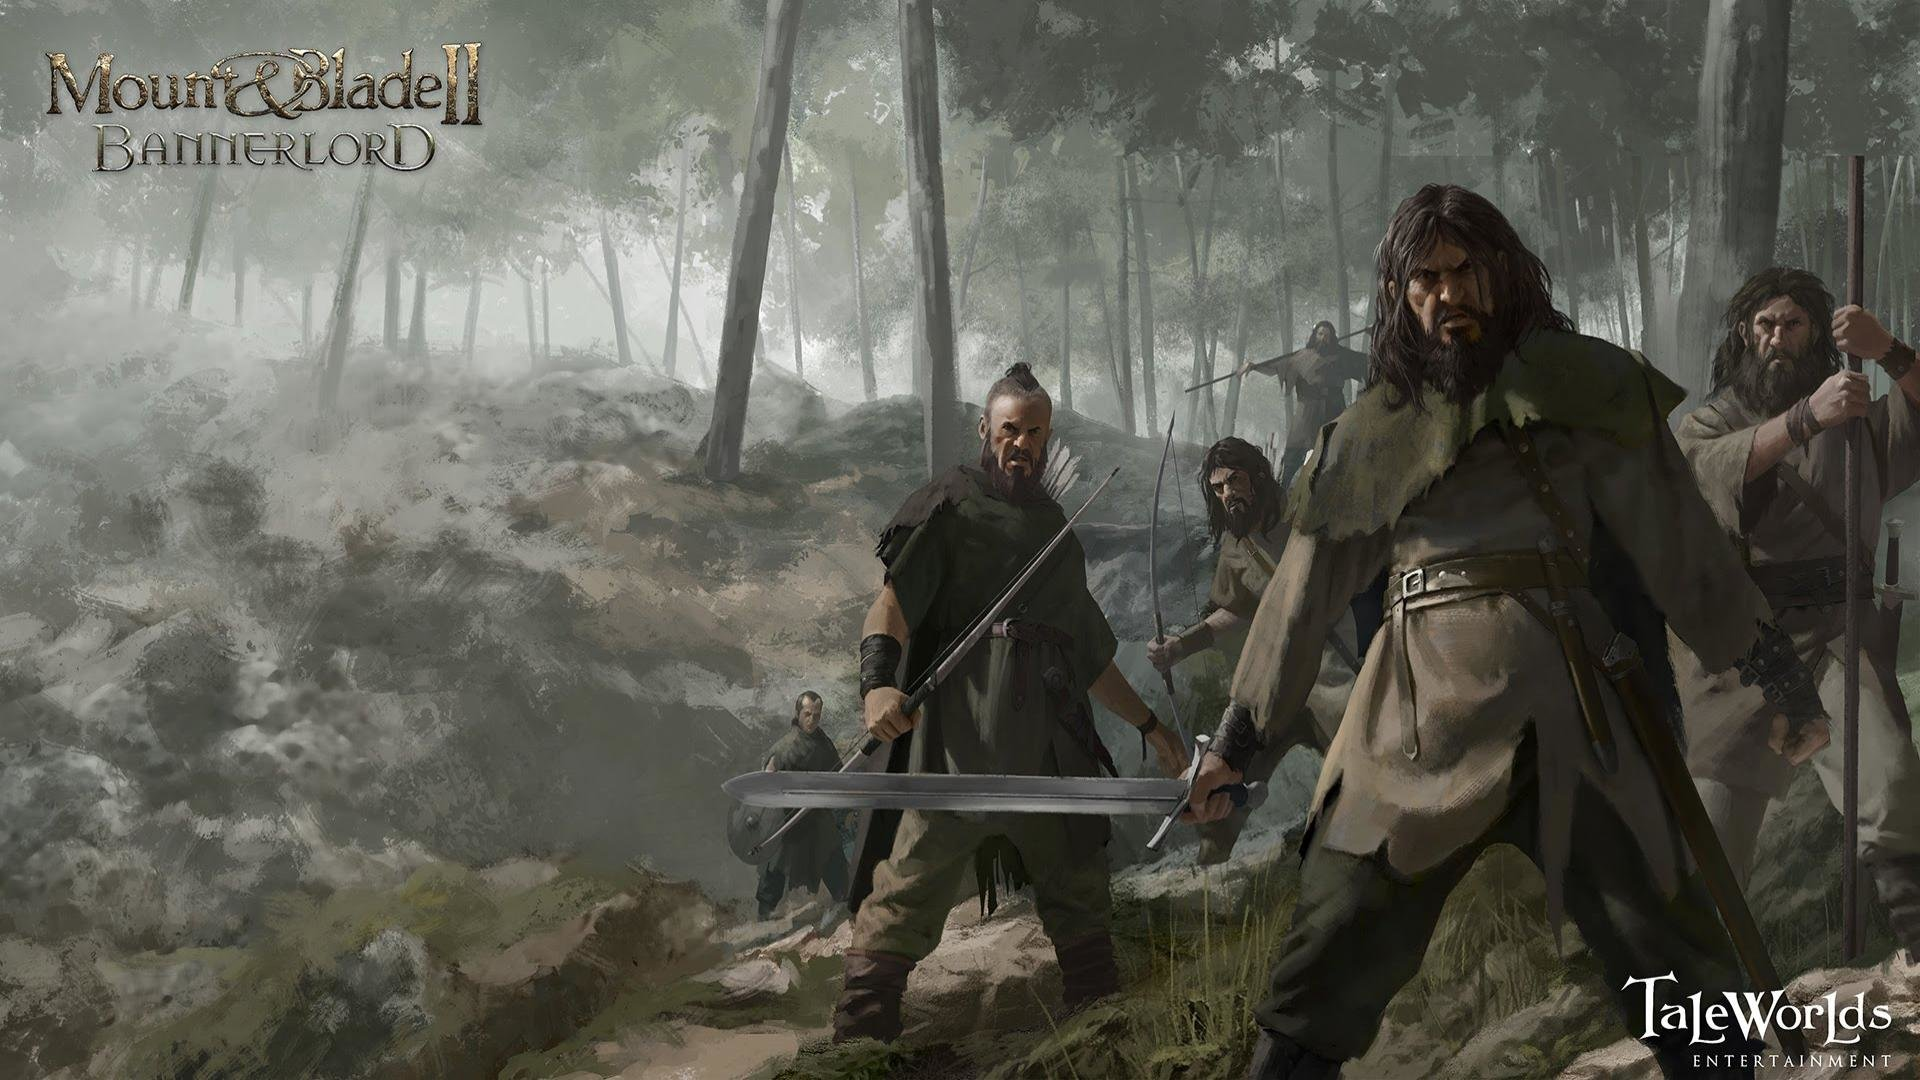 Mount Blade Ii Bannerlord Wallpapers Hd For Desktop Backgrounds